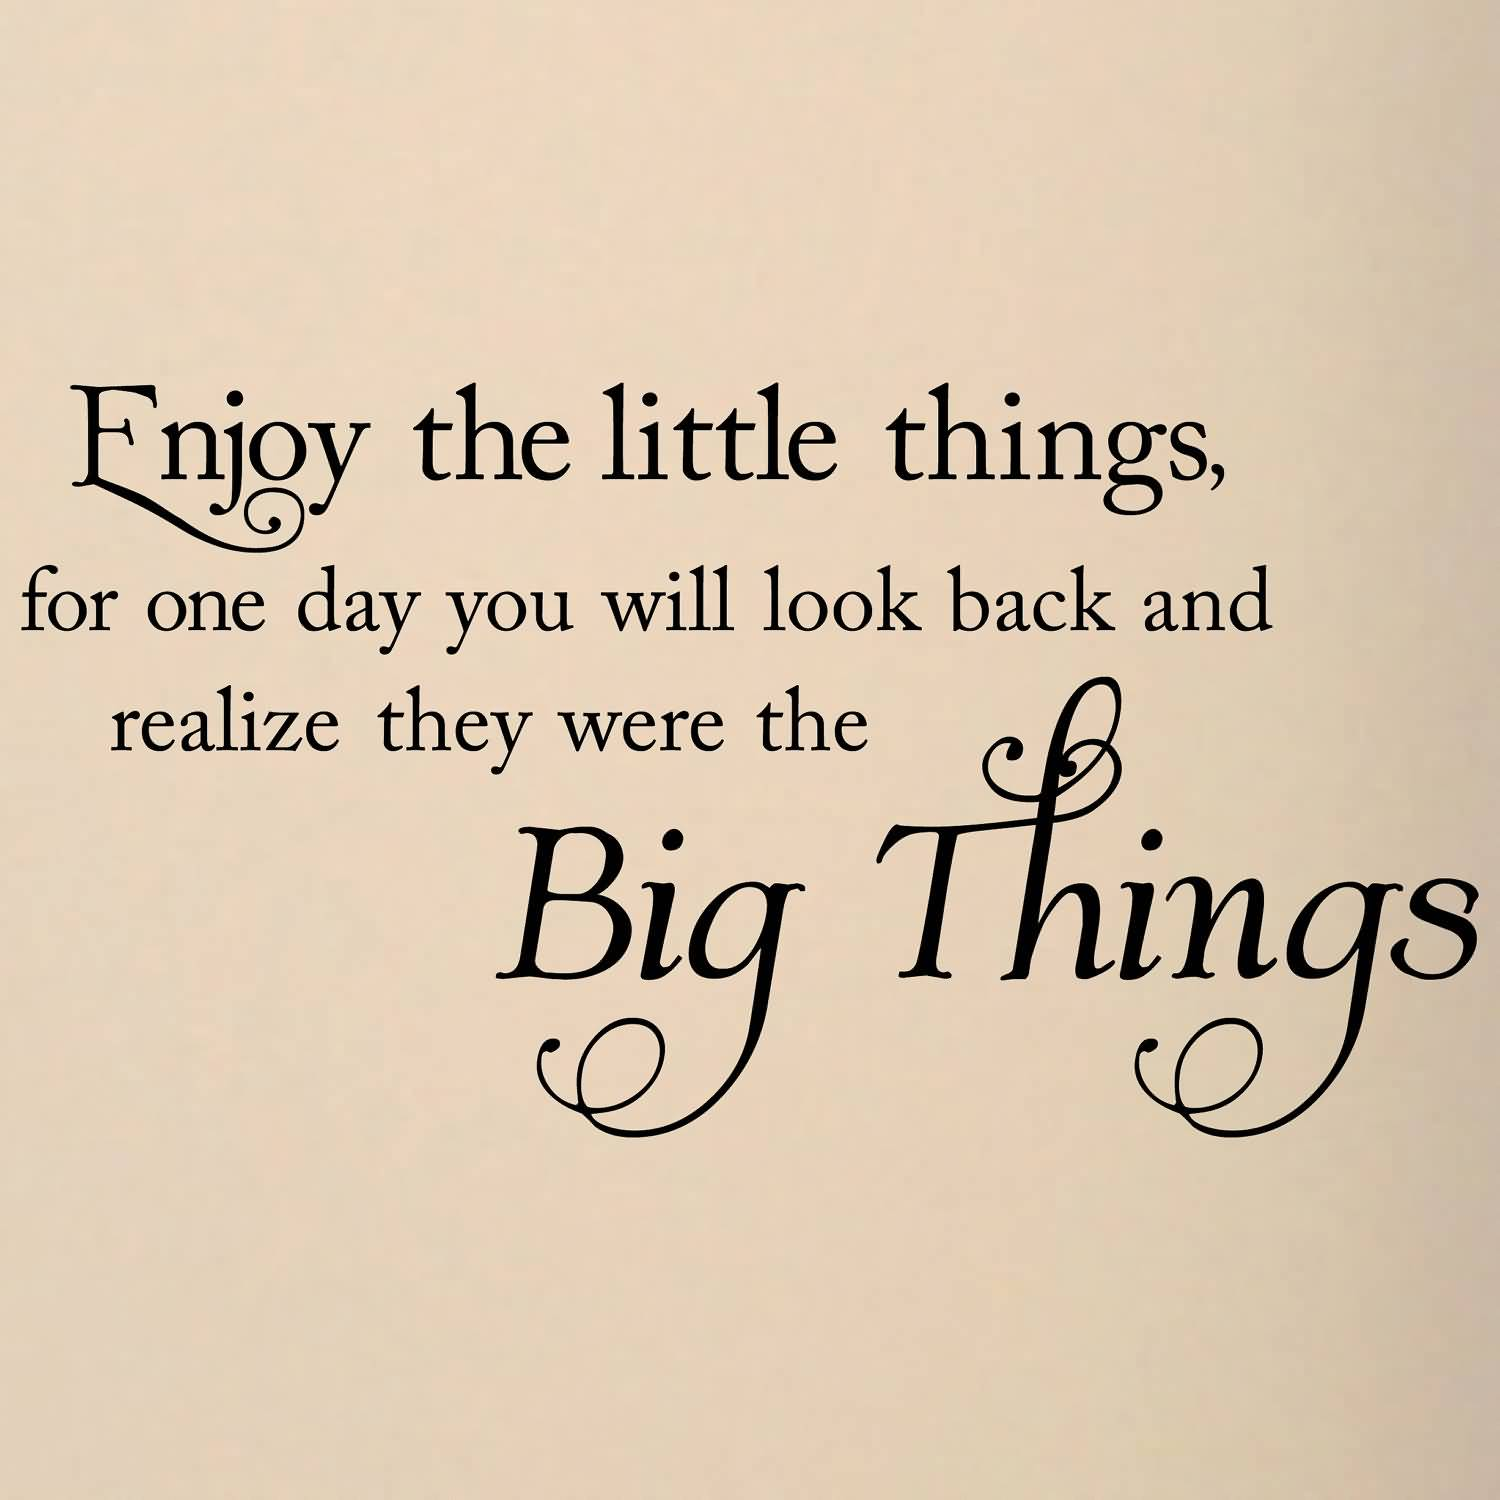 Small Things In Life Quotes. QuotesGram